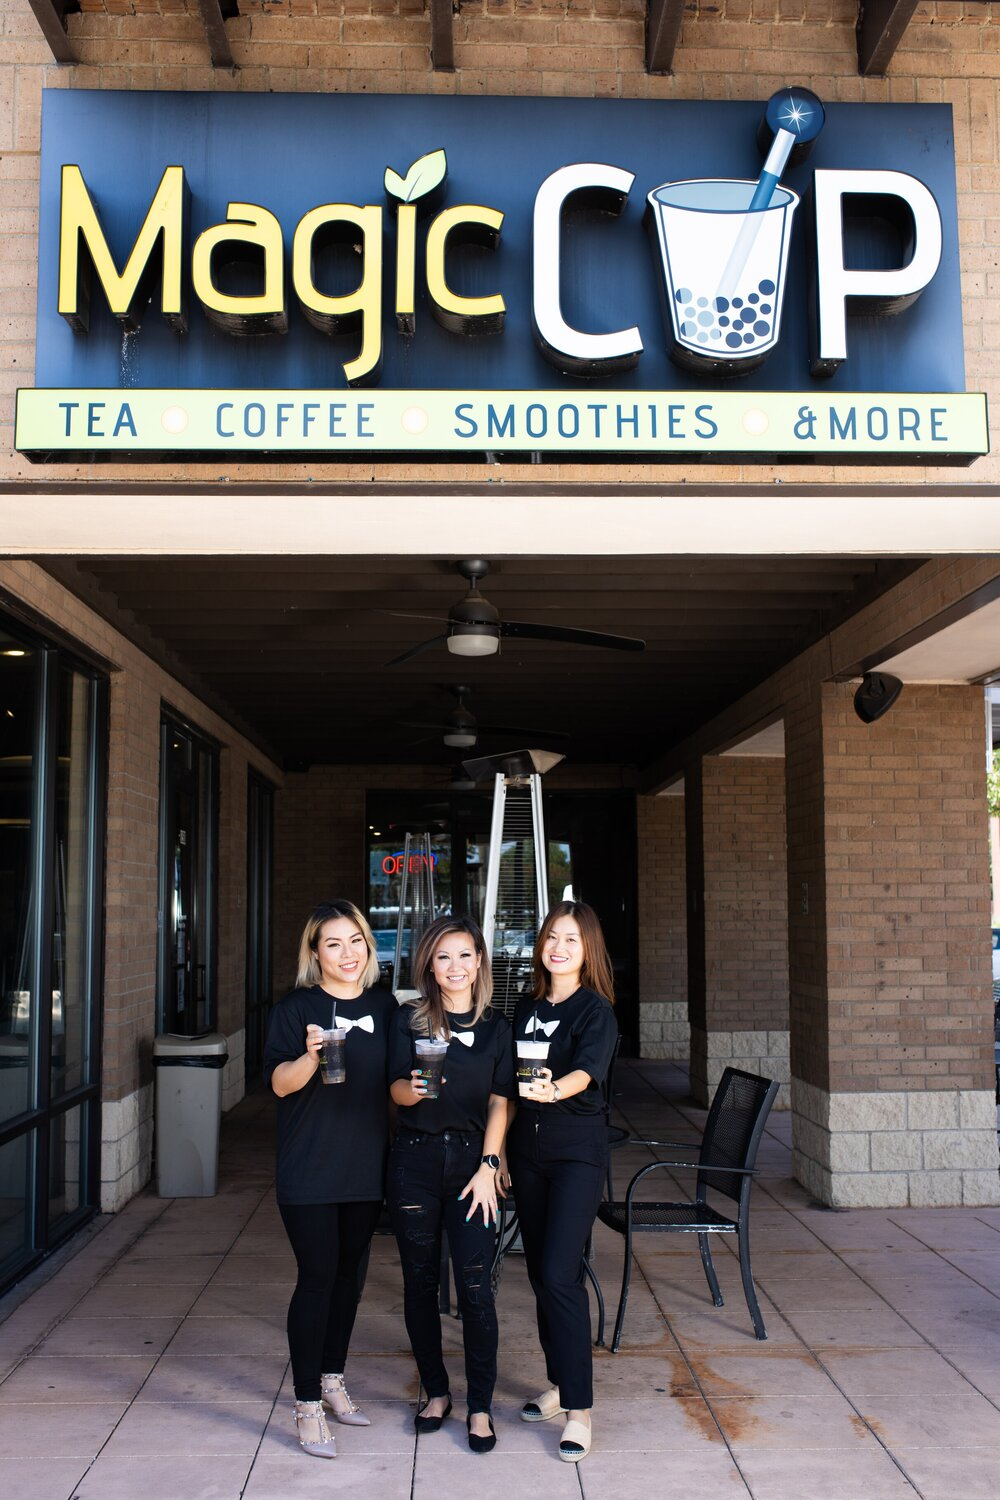 A New Magic Cup Franchise Is Coming To McKinney, Texas